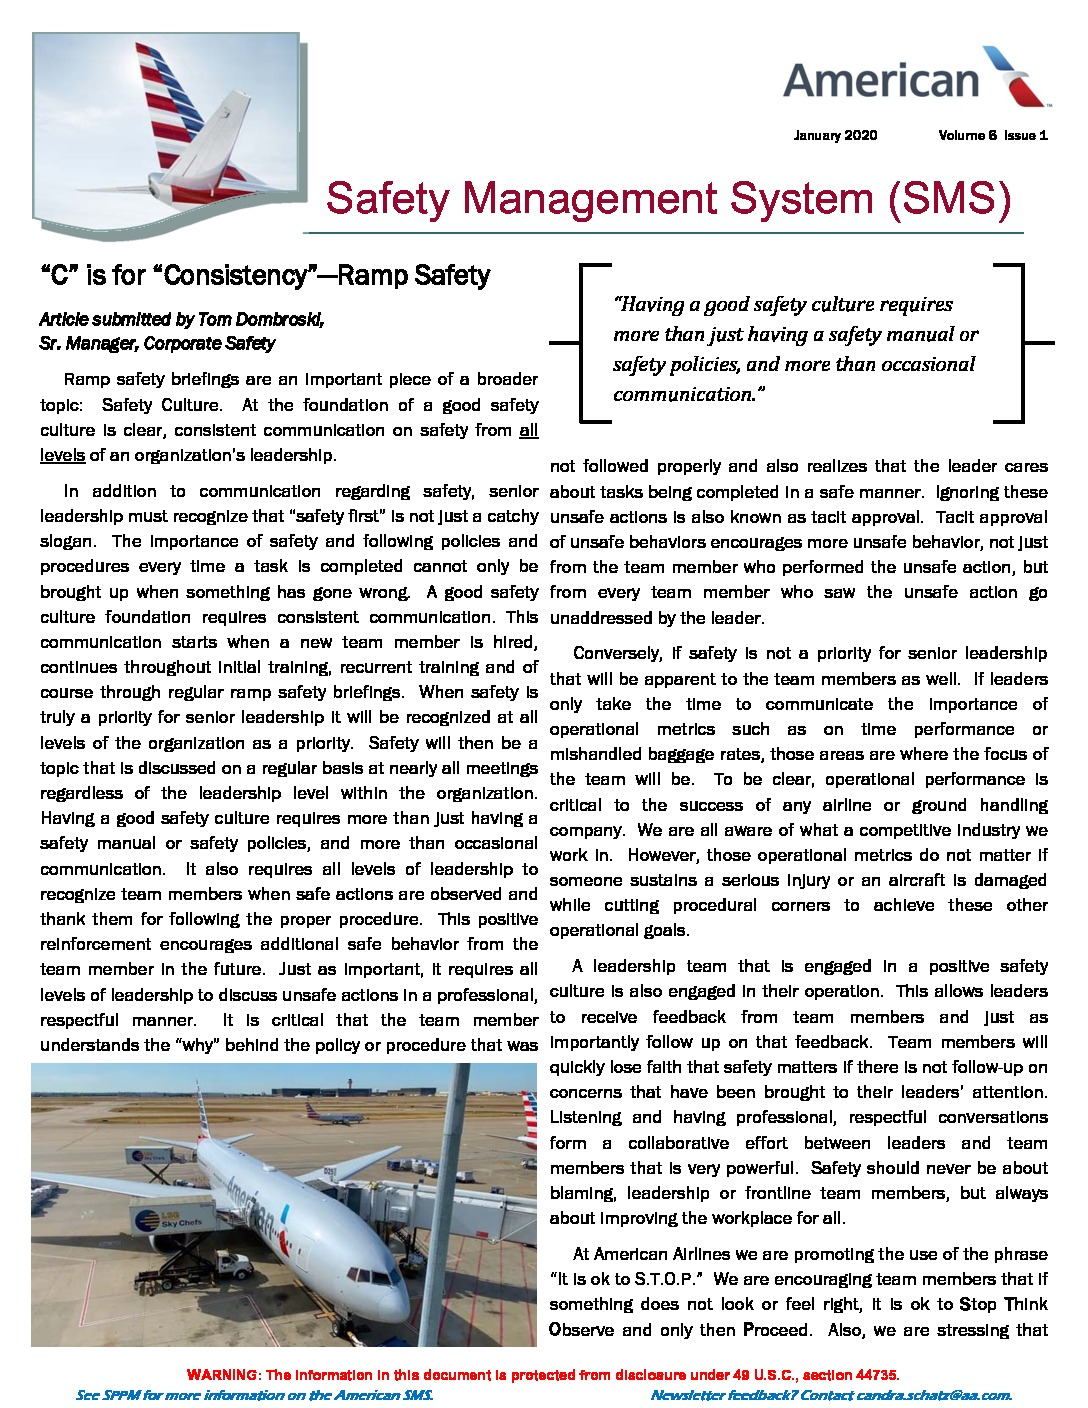 thumbnail of SMS Newsletter Ramp Safety Page 1